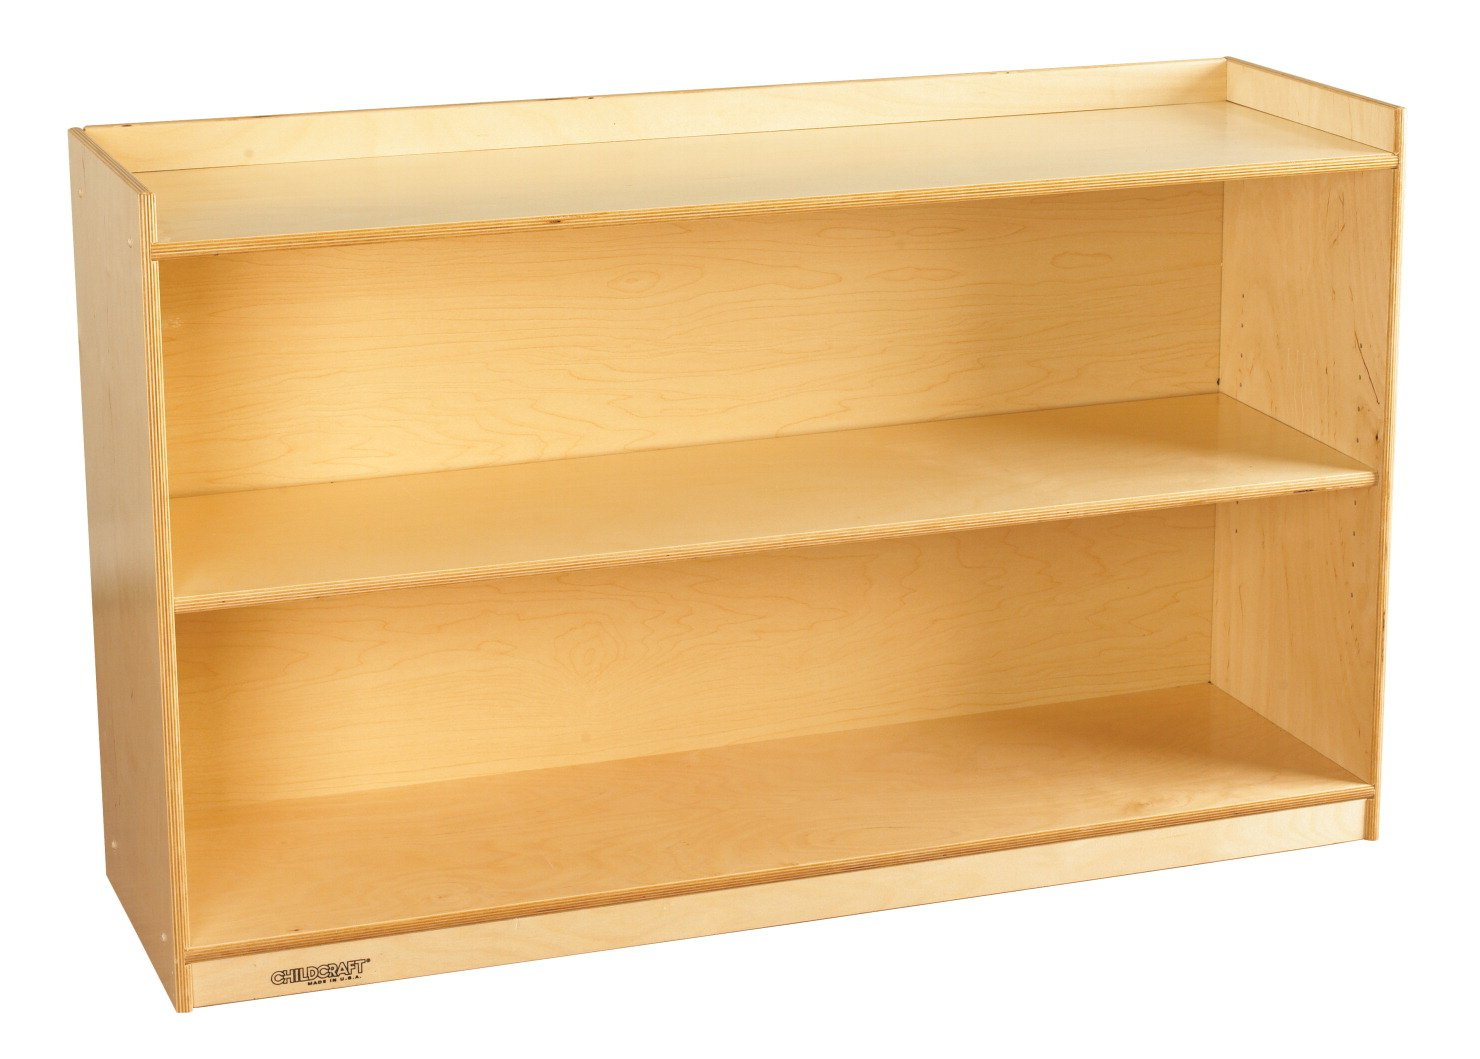 Childcraft 1464171 Adjustable Mobile Book Case with Lip, 2-Shelf, Wood, 47-3/4'' x 14-1/4'' x 30'', Natural Wood Tone